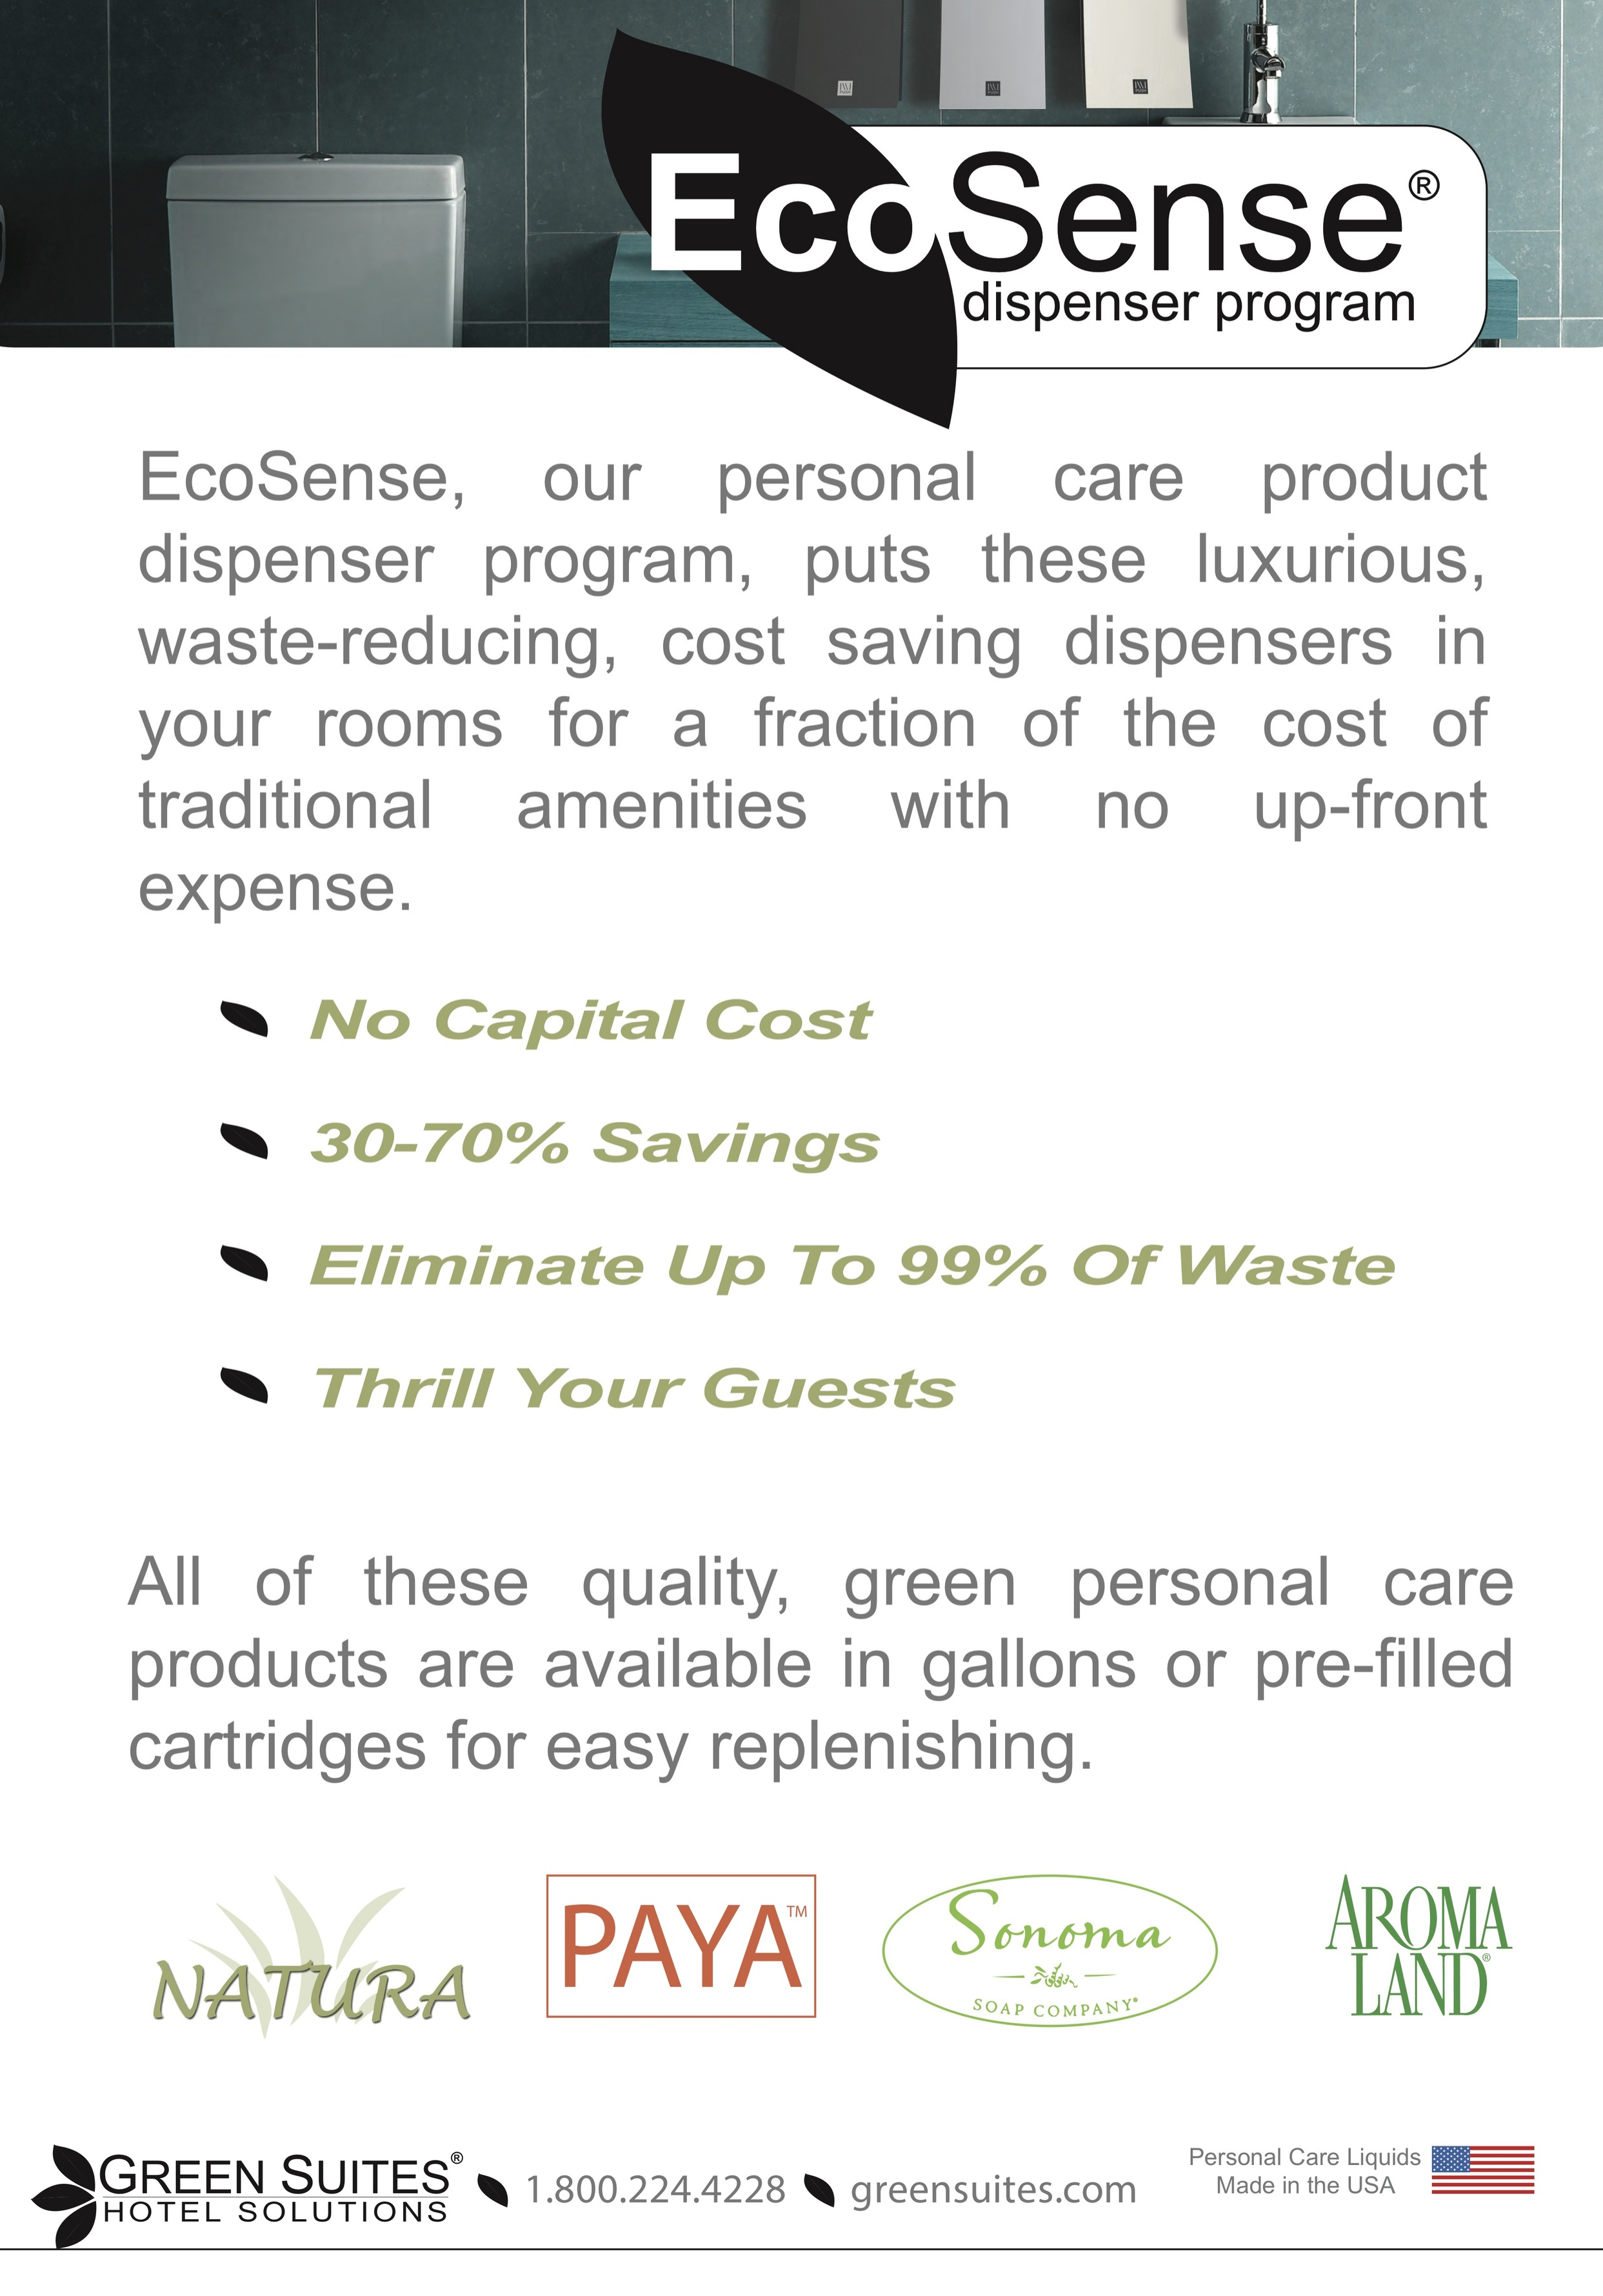 BEFORE: EcoSense Banner  Lacked hierarchy and first impression could be improved